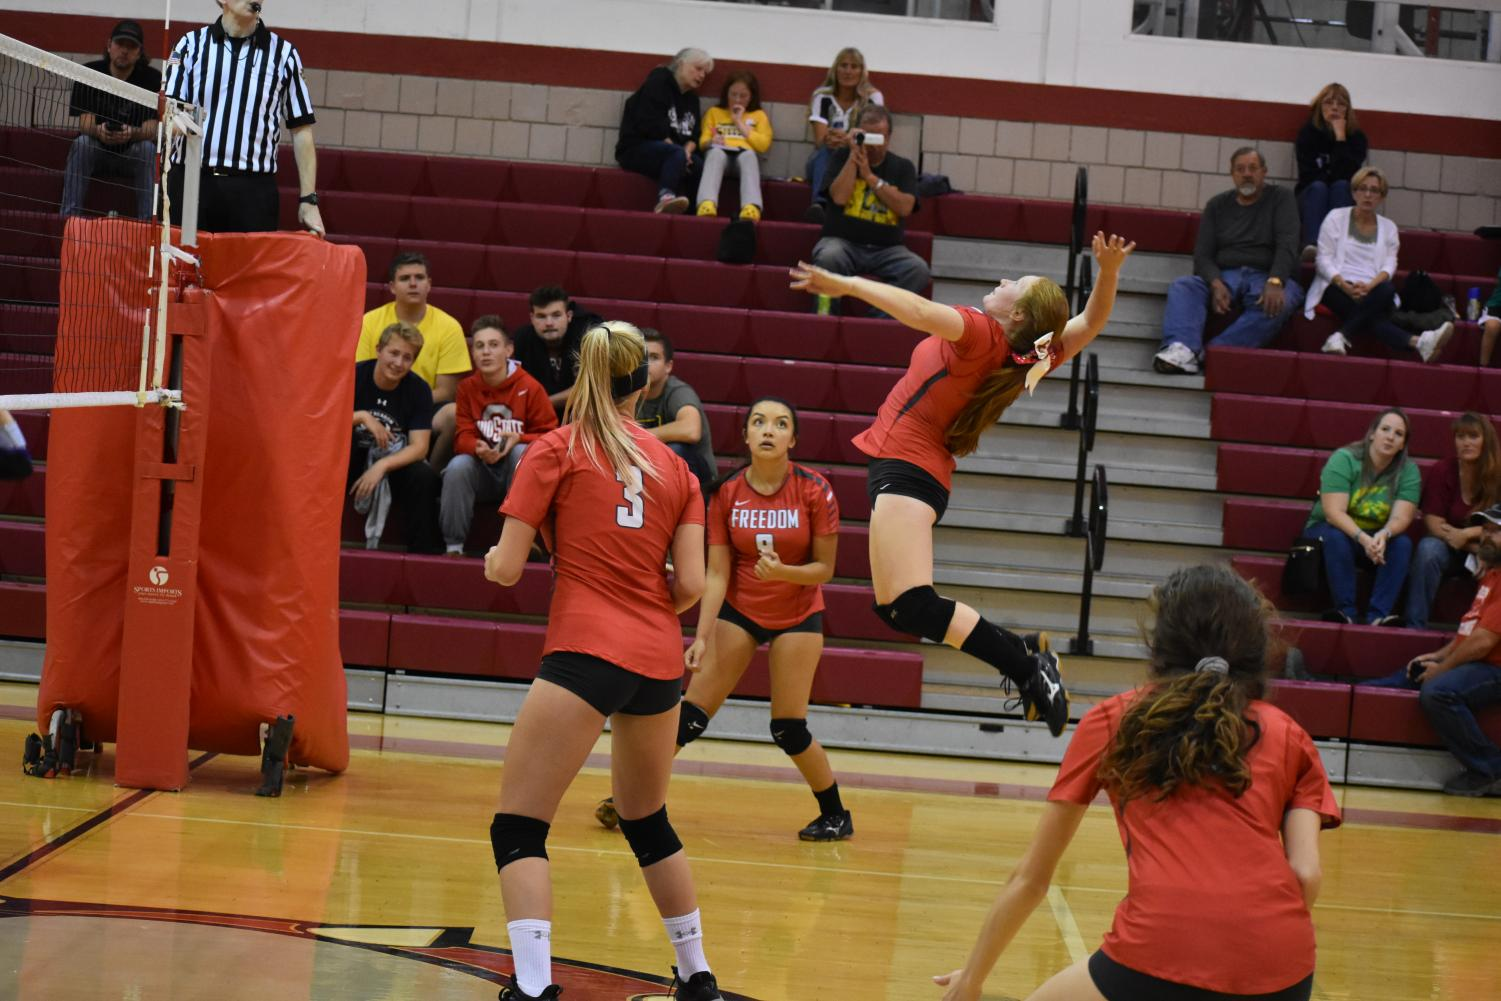 Junior Alexis Surenda jumps to hit the ball in an attempt to launch it over to the other side of the third hit against OLSH on Oct. 10.